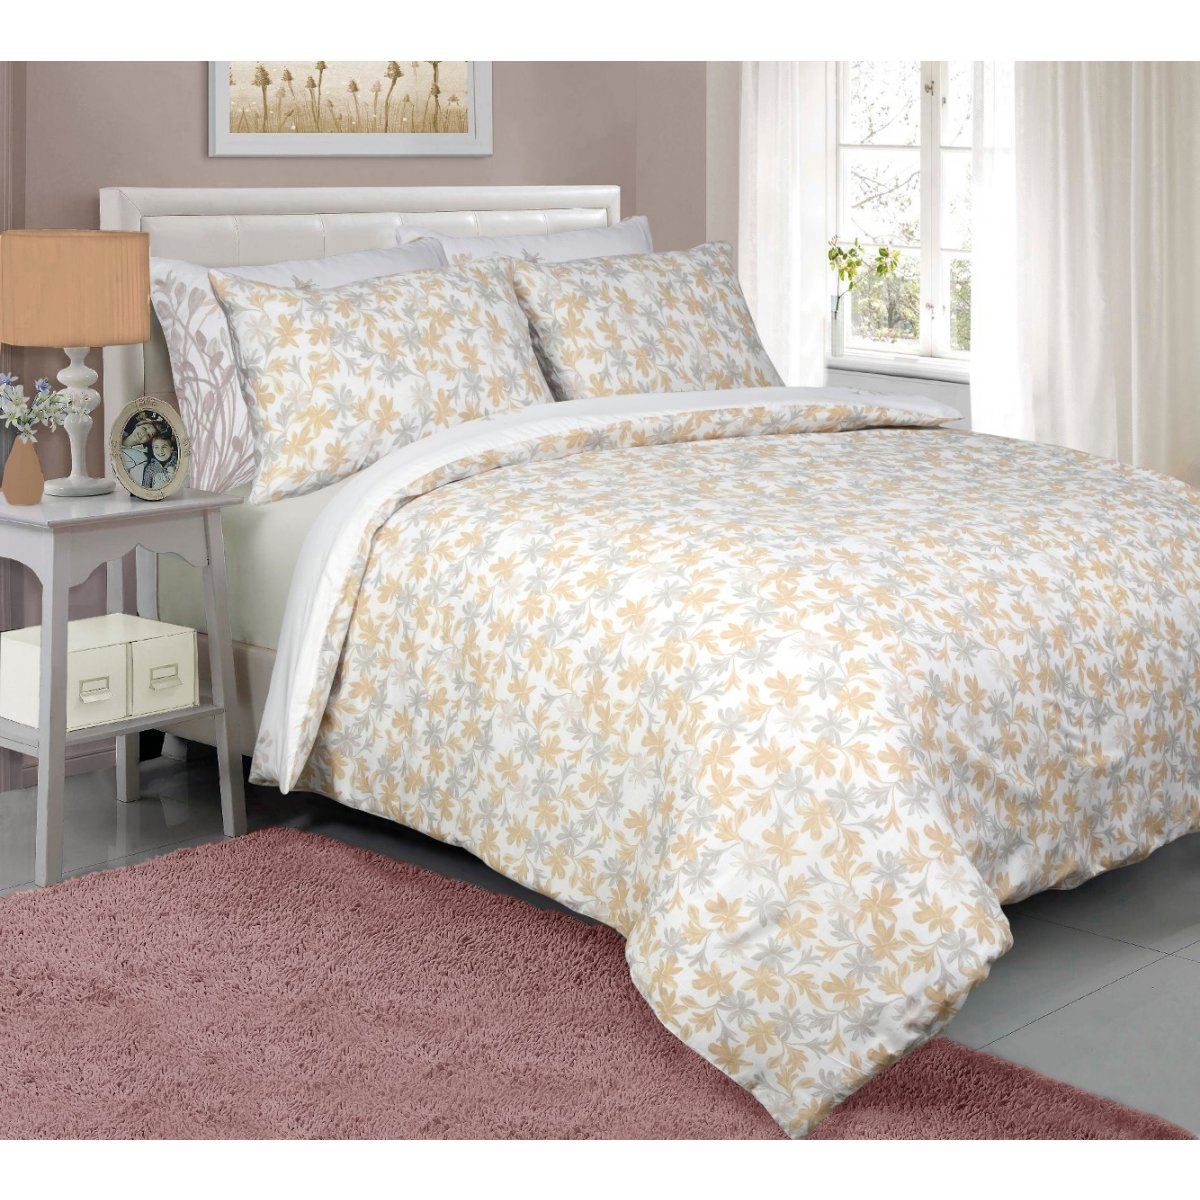 Meadow Natural Bedding - Reversible Duvet Cover and Pillowcase Set